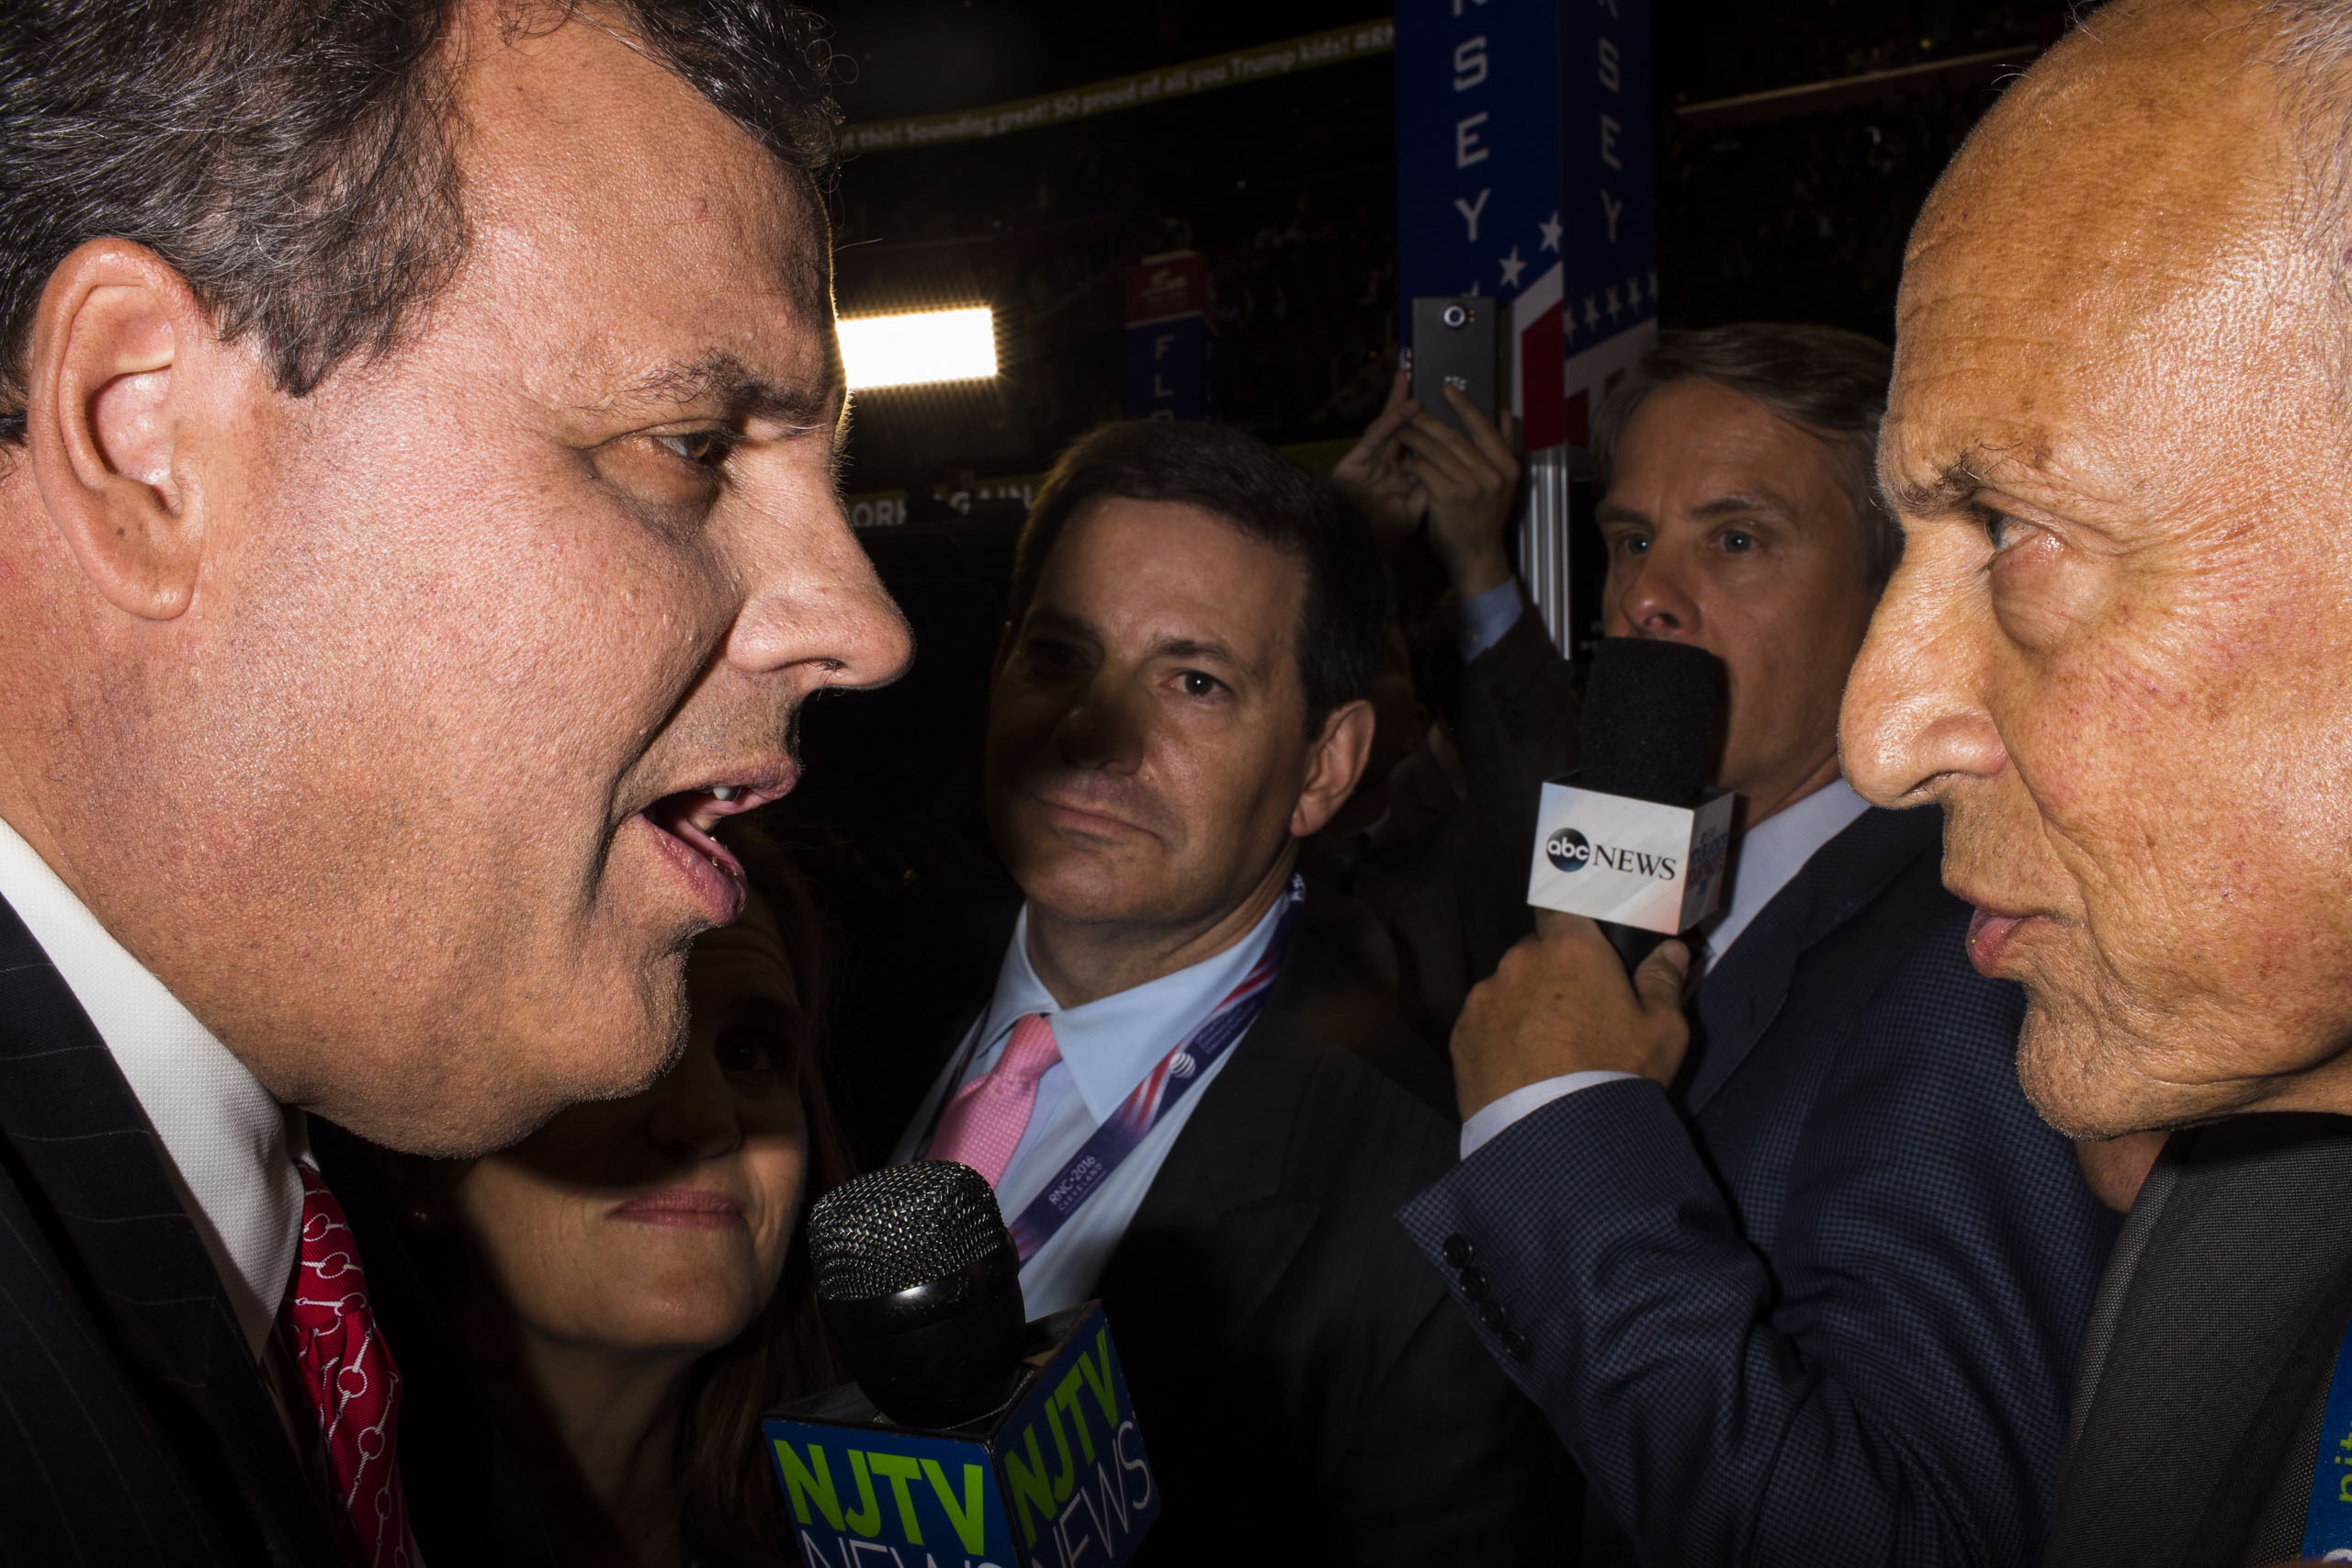 New Jersey Gov. Chris Christie speaks to reporters at the Republican National Convention, July 19, 2016 in Cleveland.